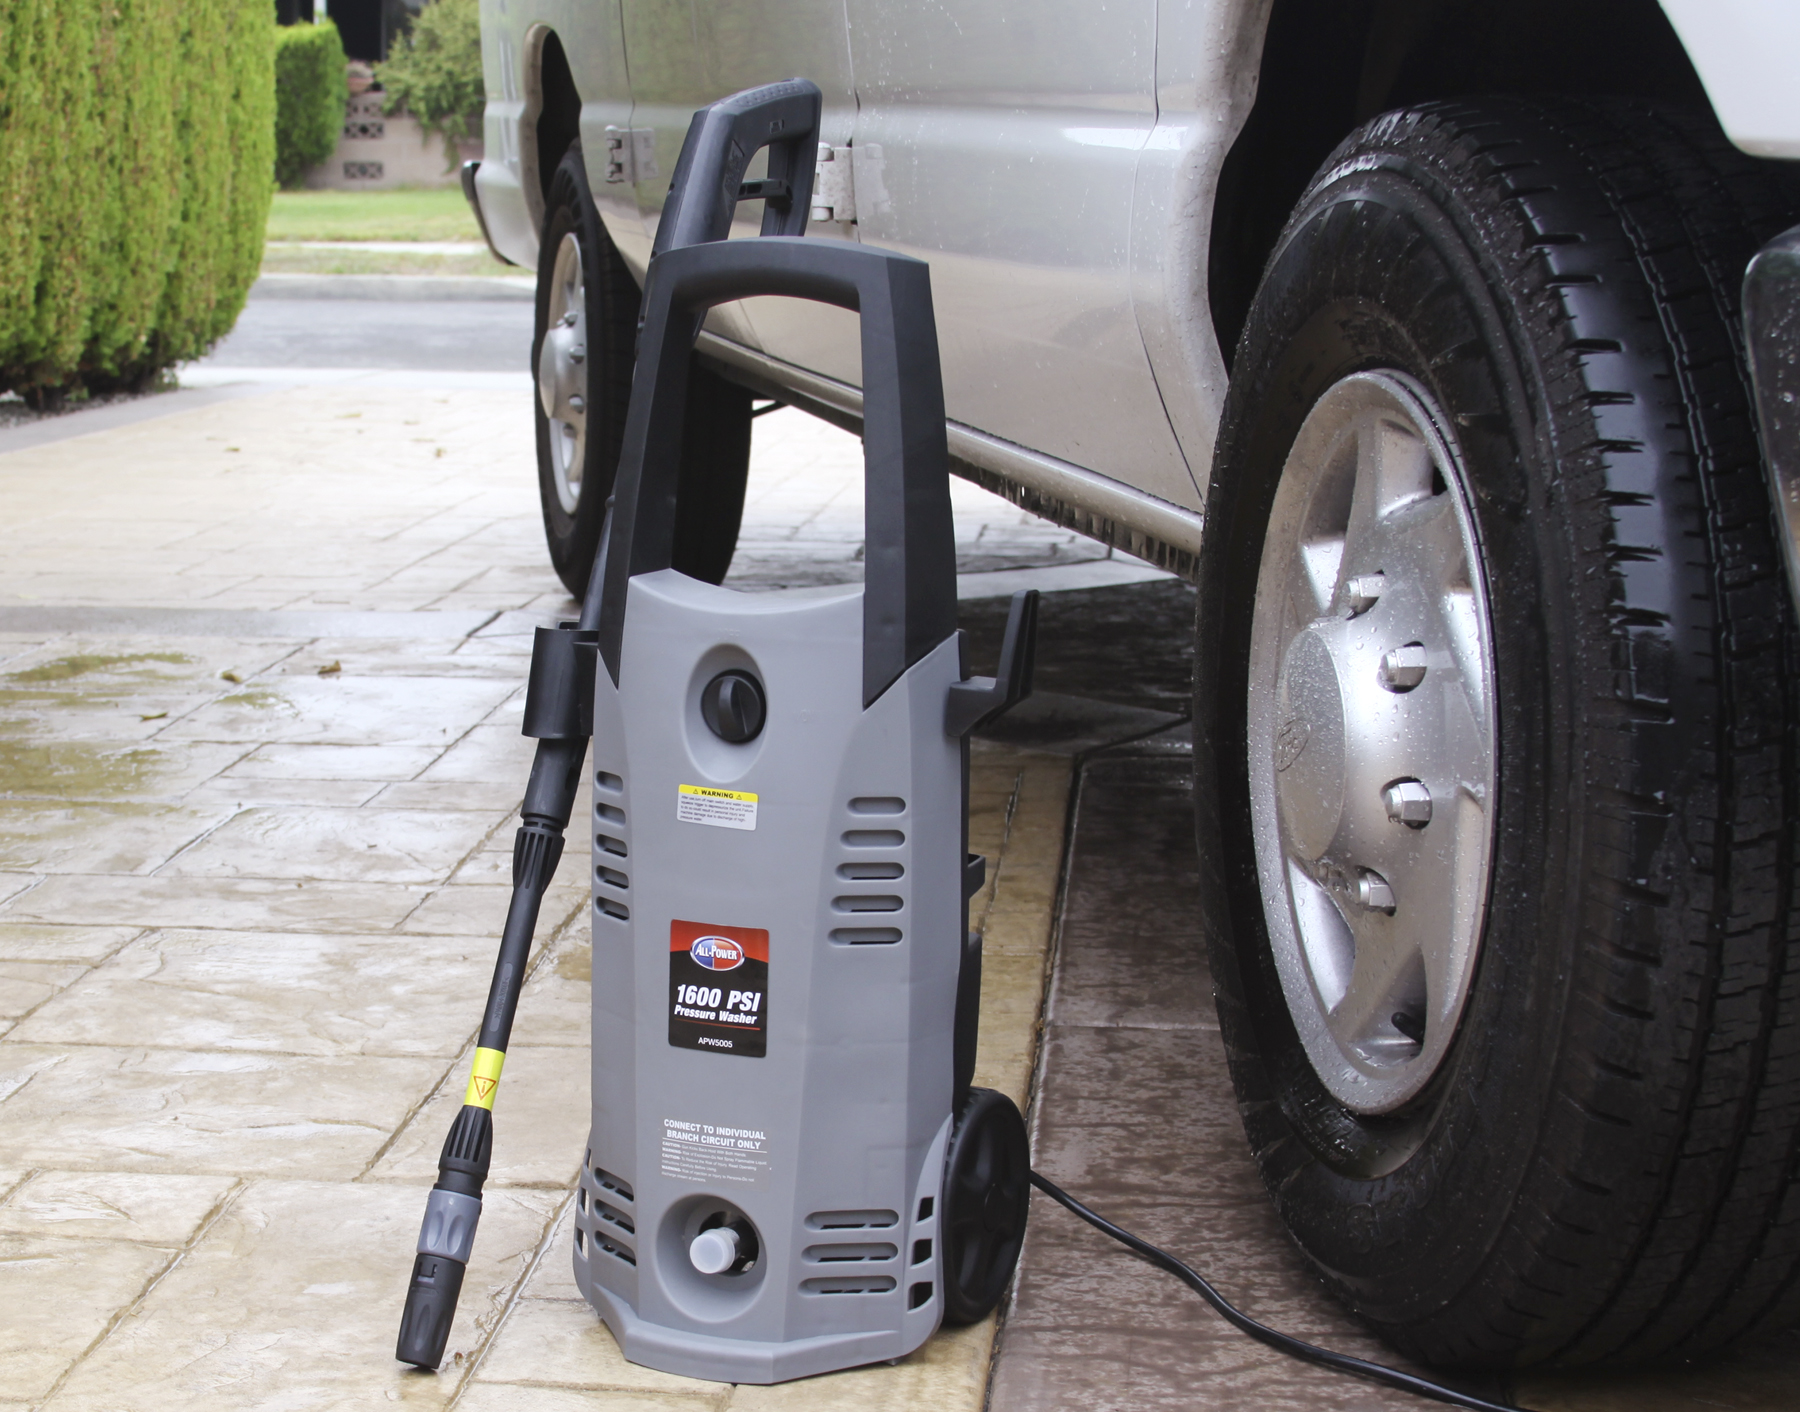 All Power America 1600psi 1.6GPM Electric Pressure Washer (Non CA)